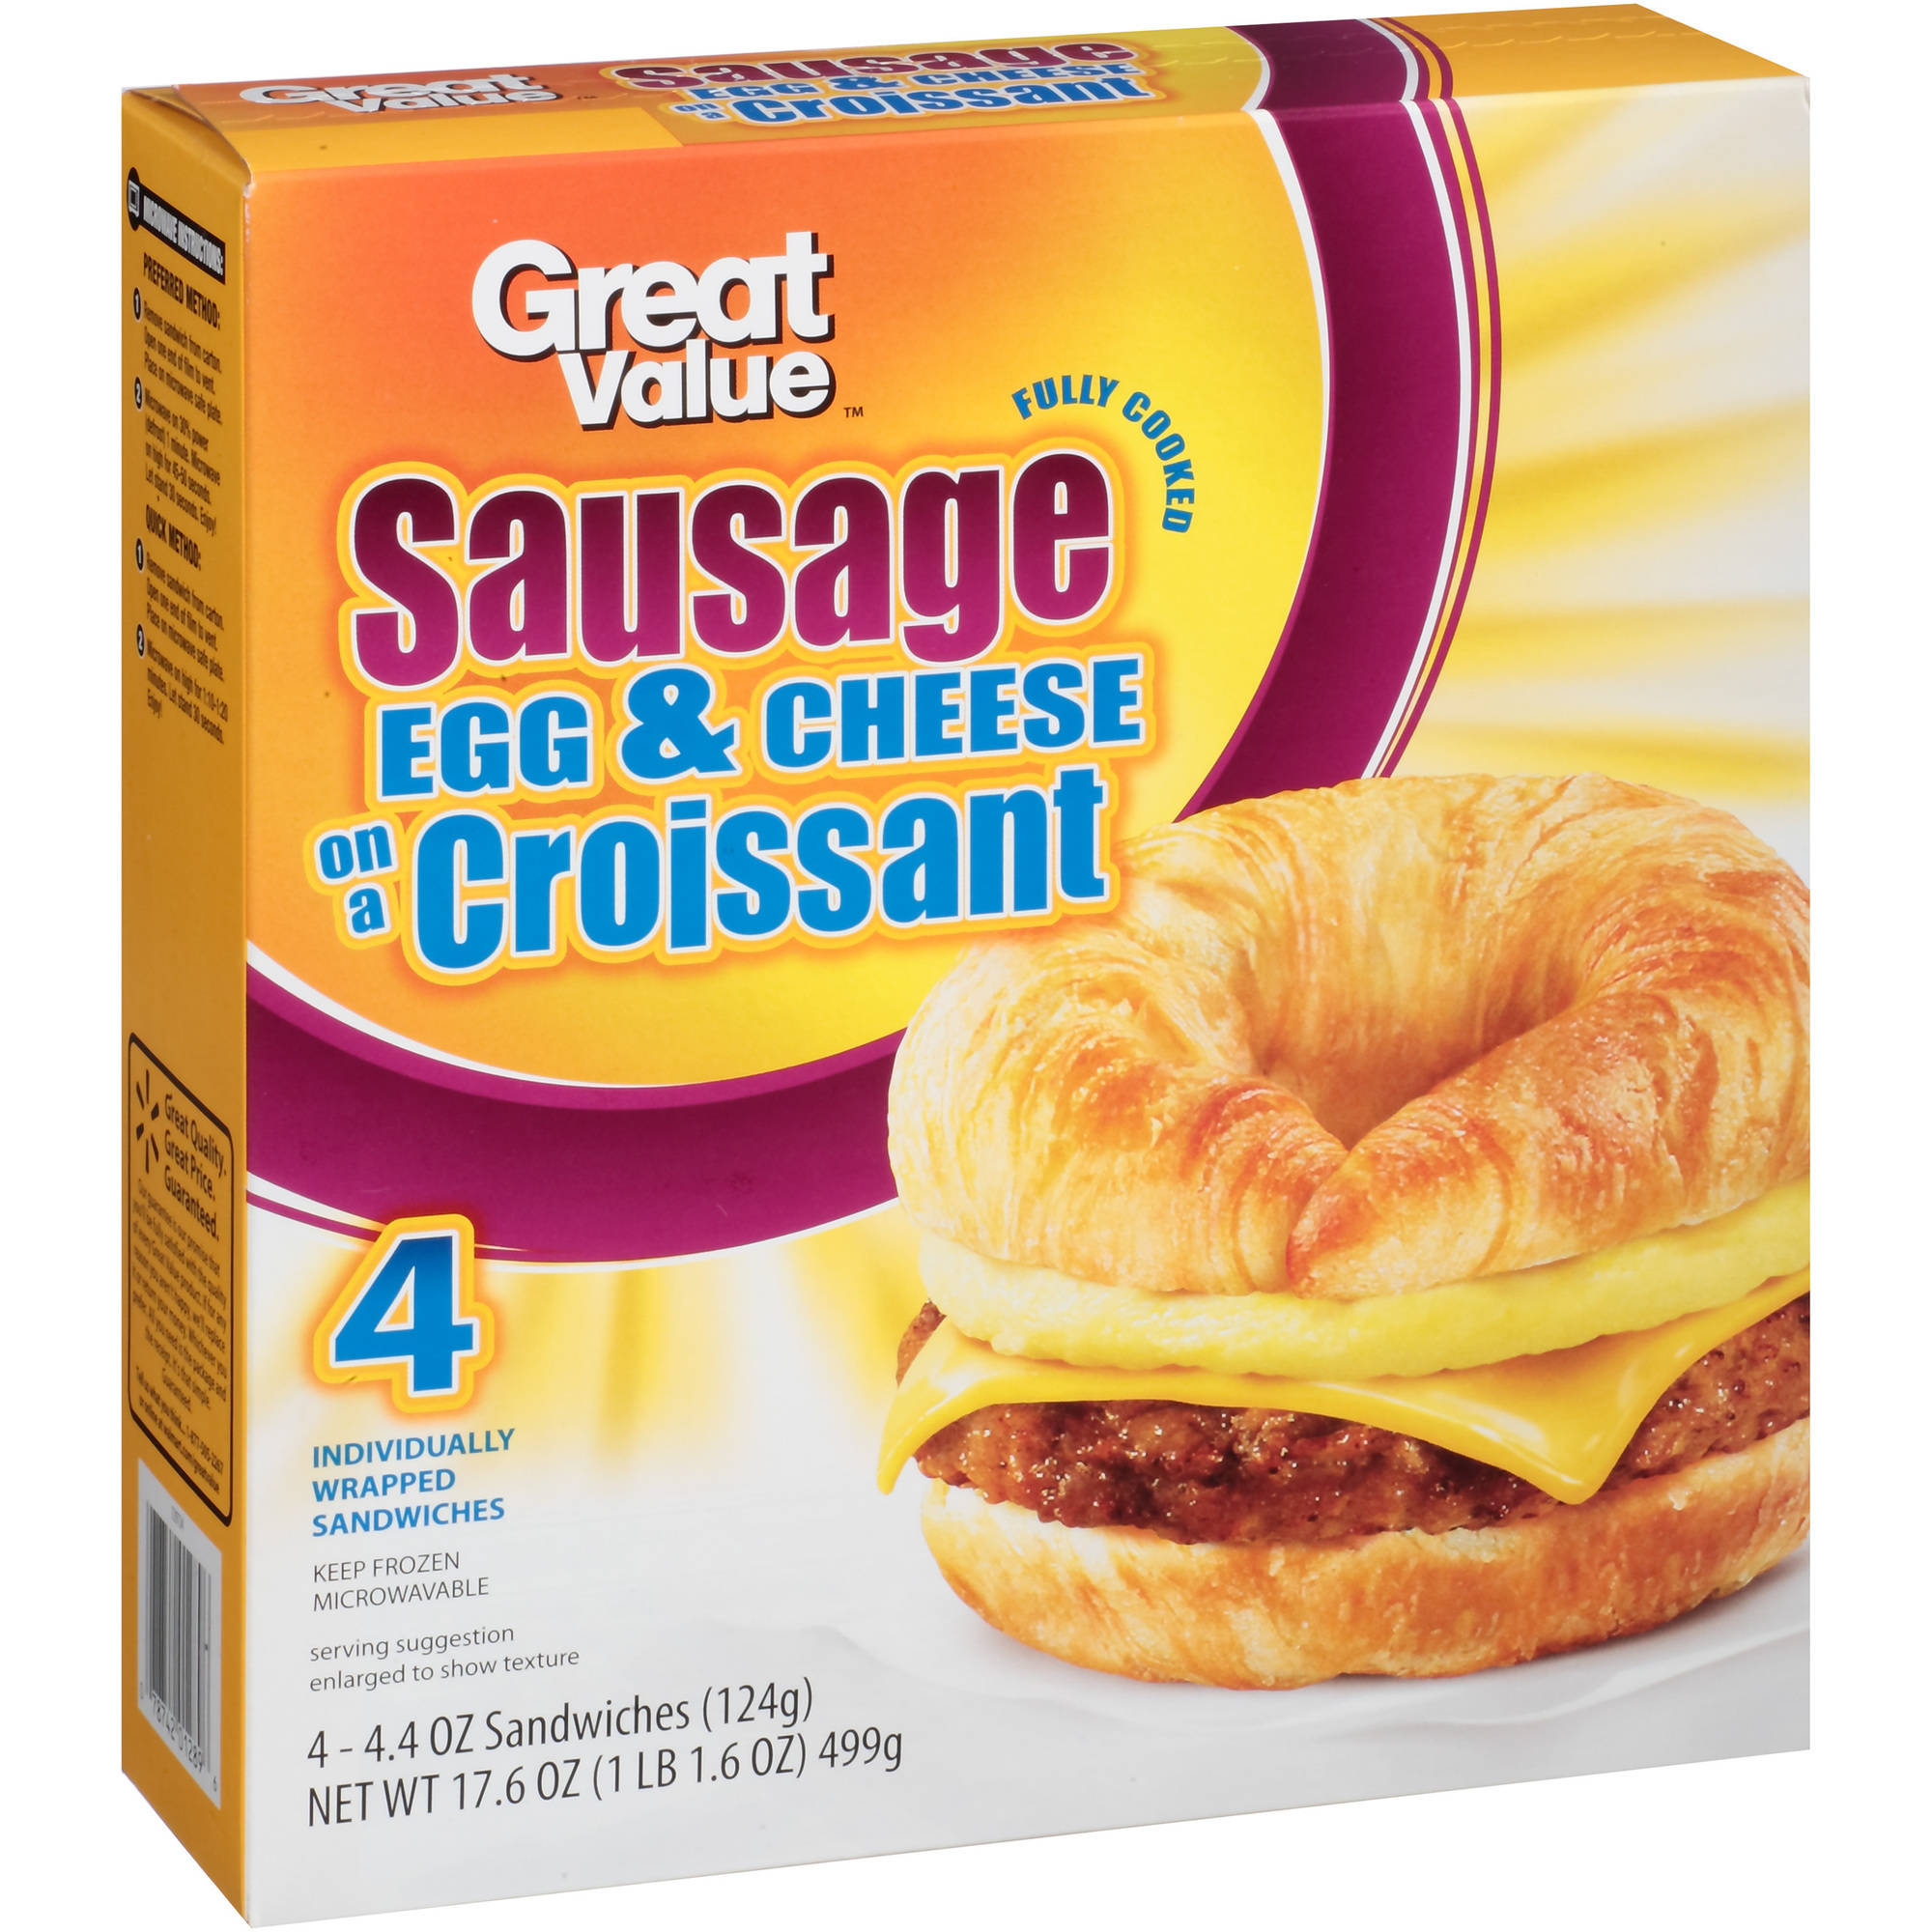 Great Value Sausage, Egg & Cheese on a Croissant, 4.4 oz, 4 Count